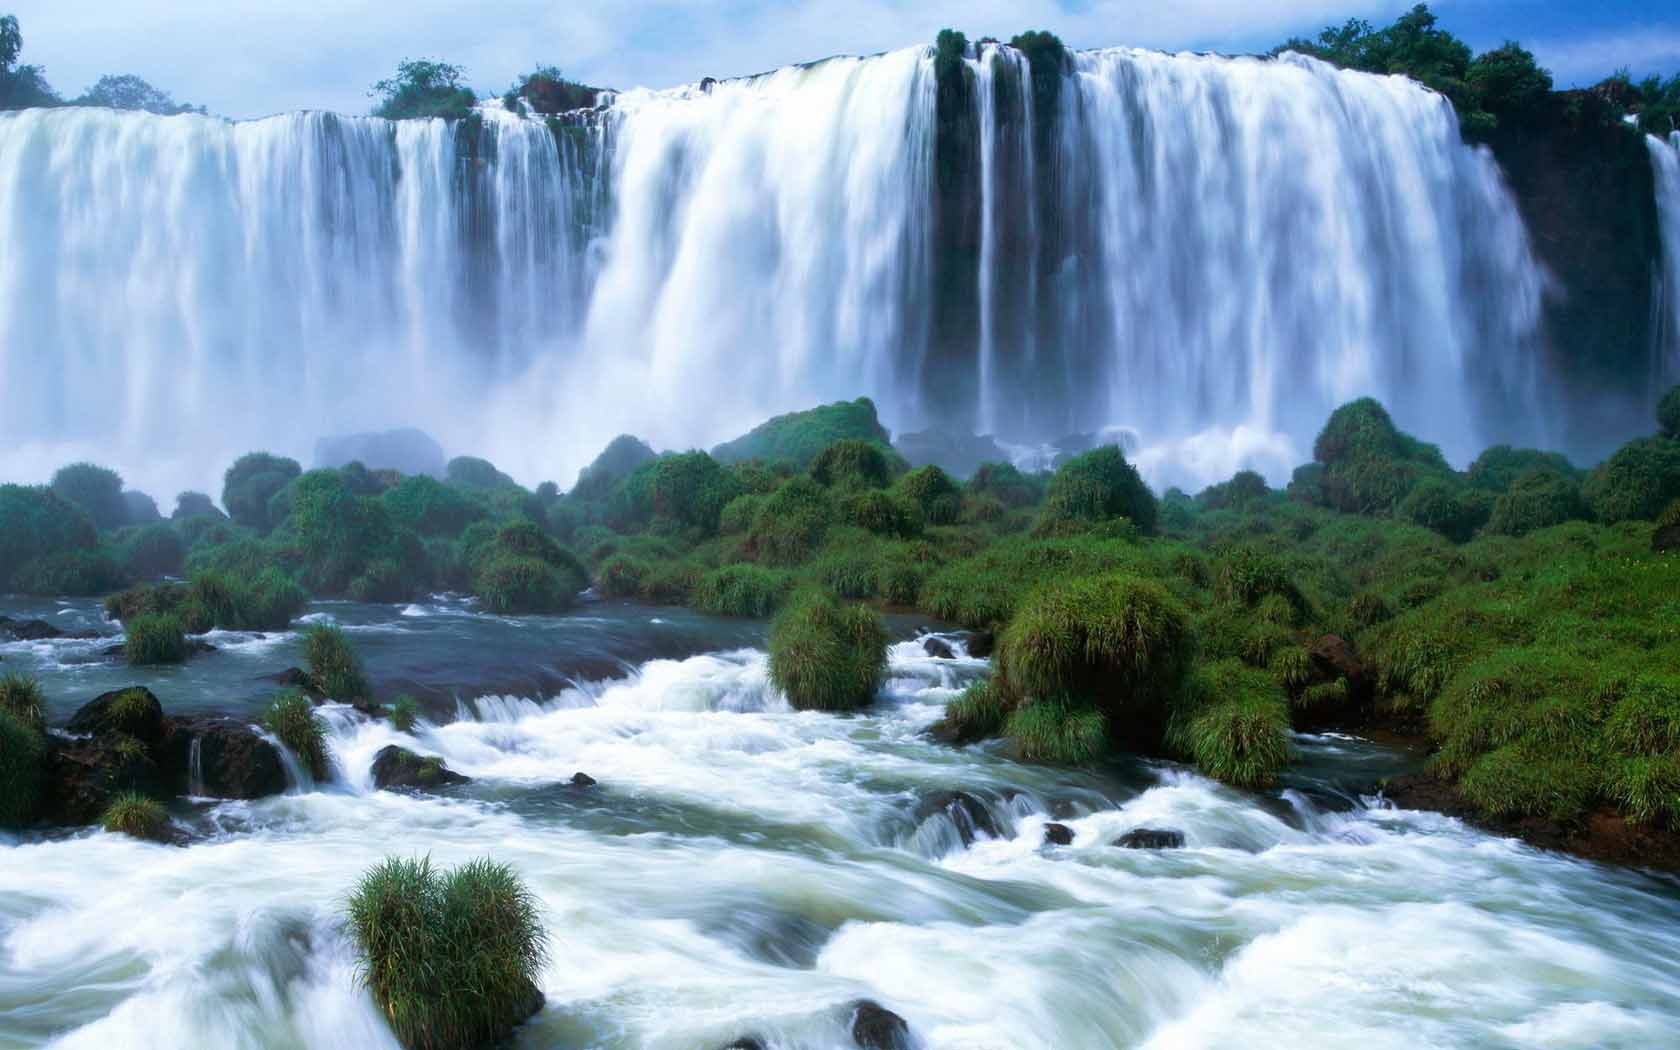 amazing water falls plesant river water desktop images picture